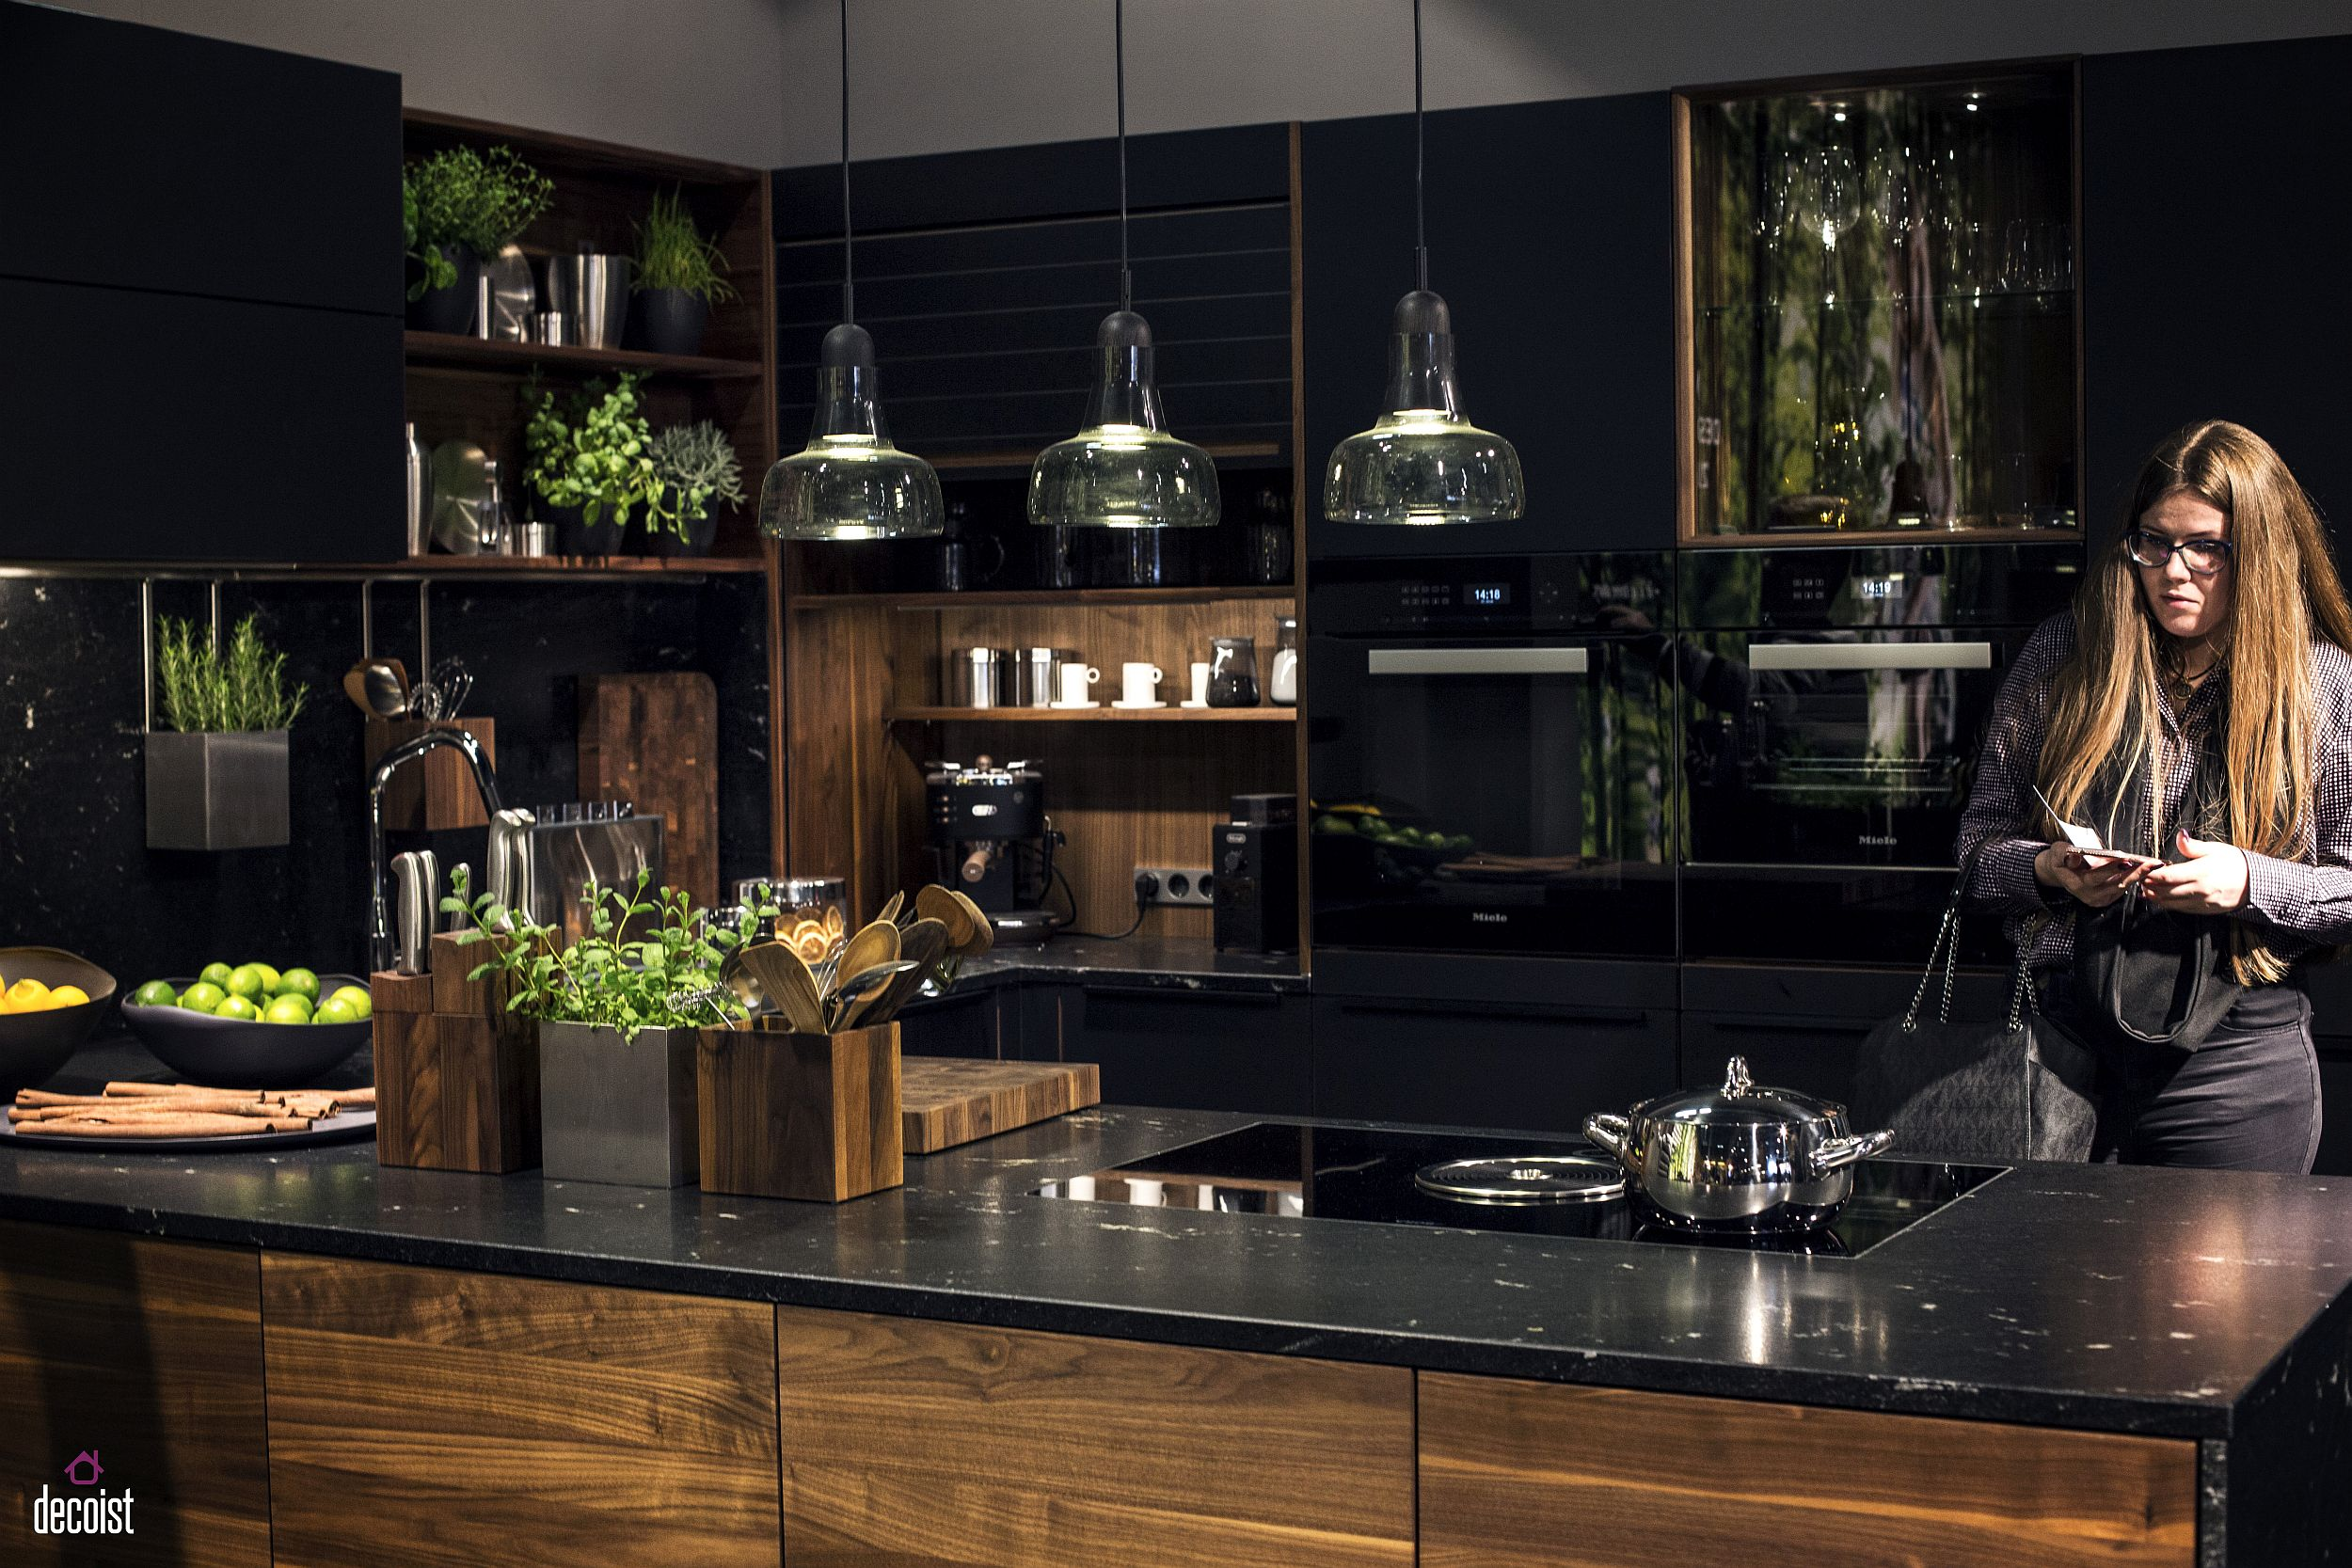 Extensive series of kitchen shelves make great use of the ample wall space